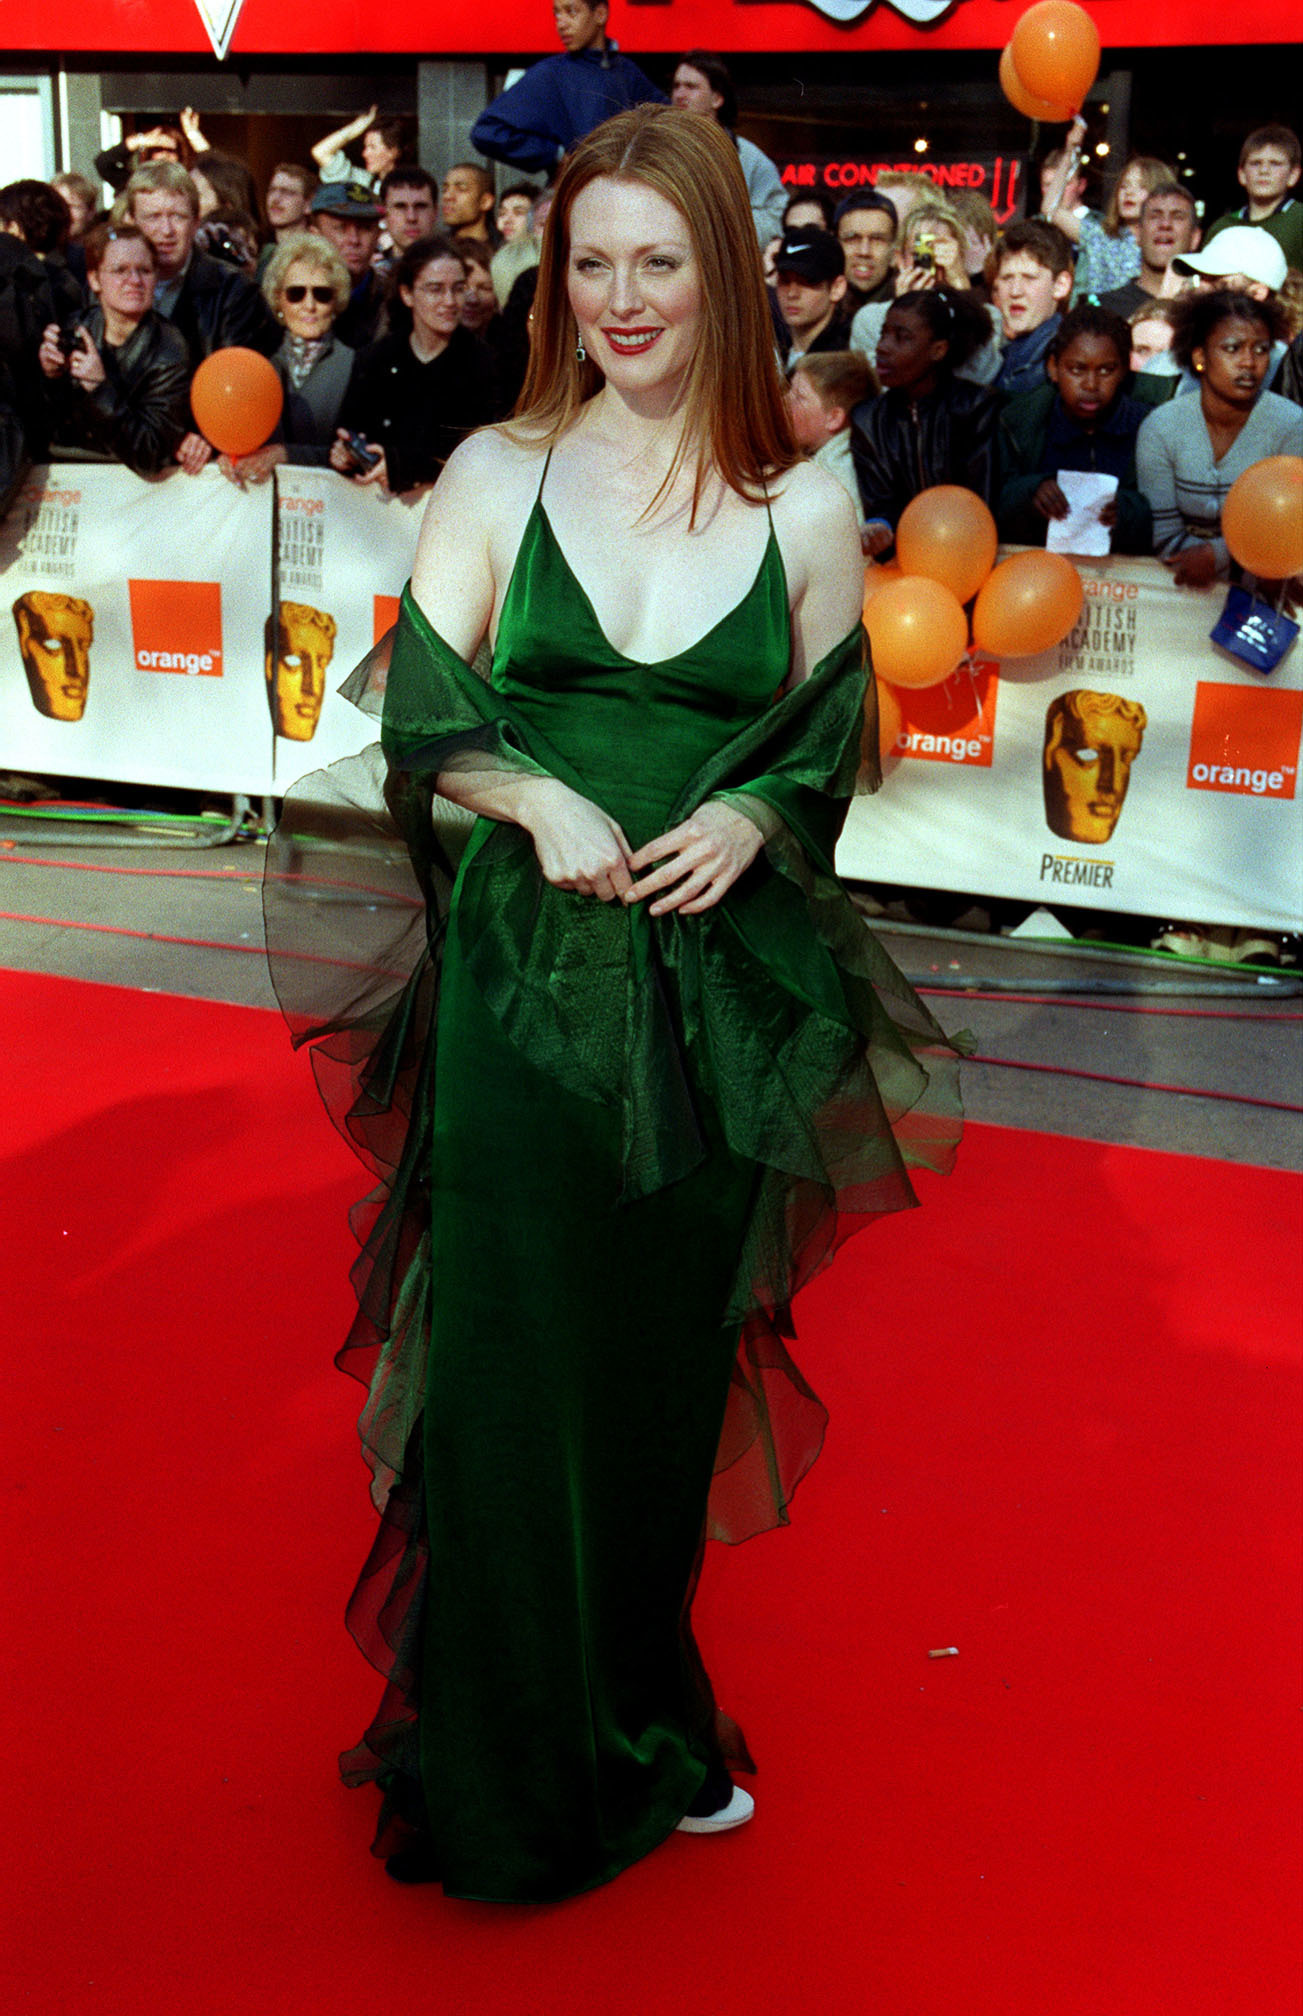 Julianne Moore at the BAFTAs in 2000